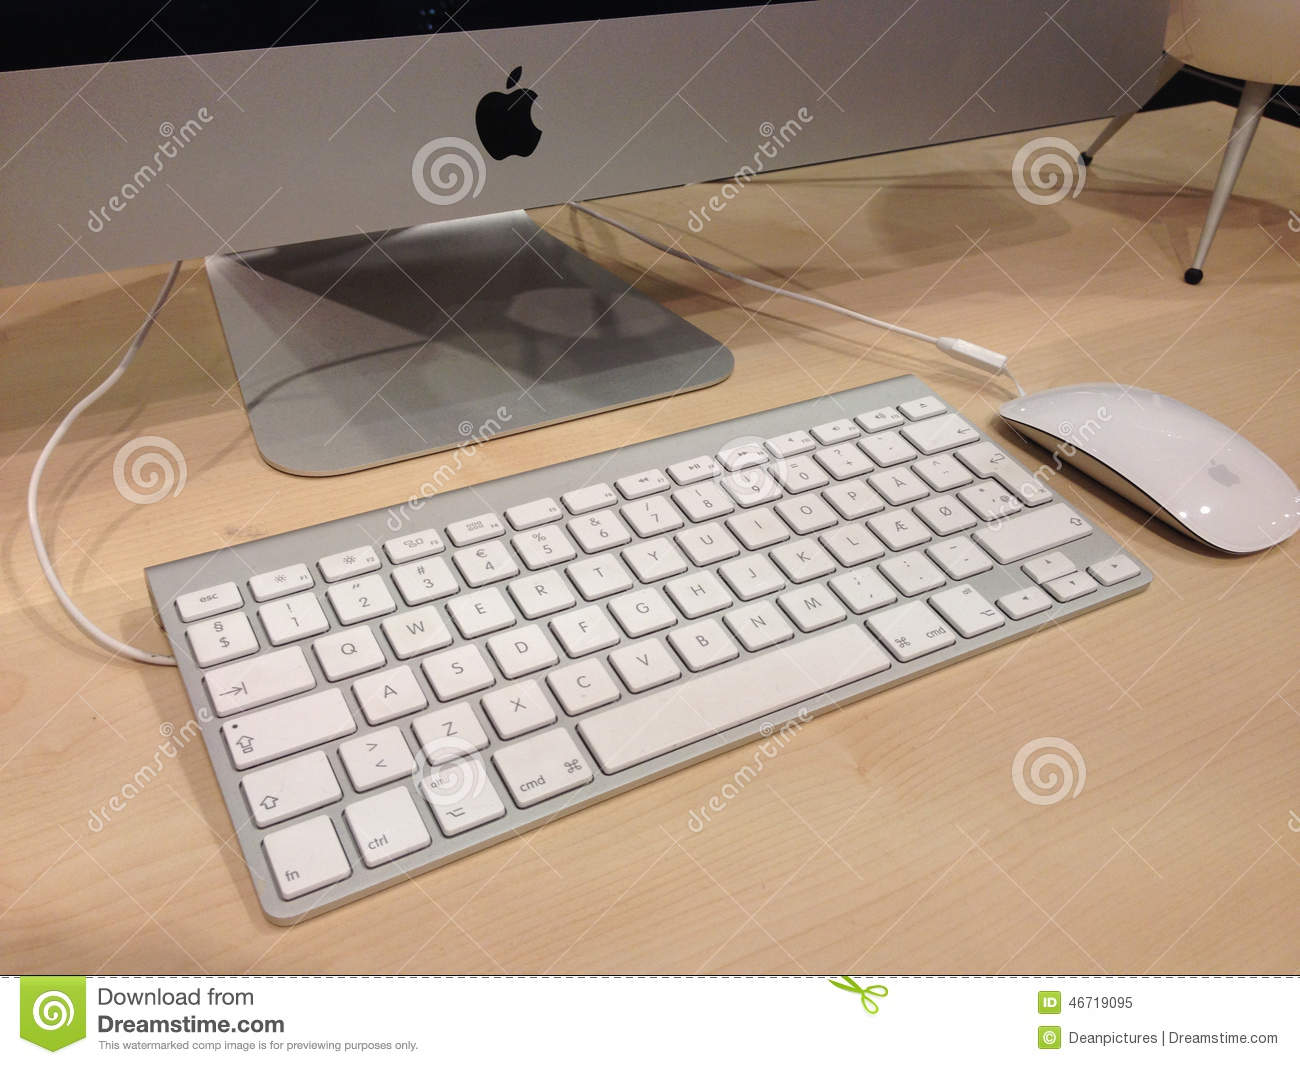 Apple mac products editorial image image 46719095 for Apple product book